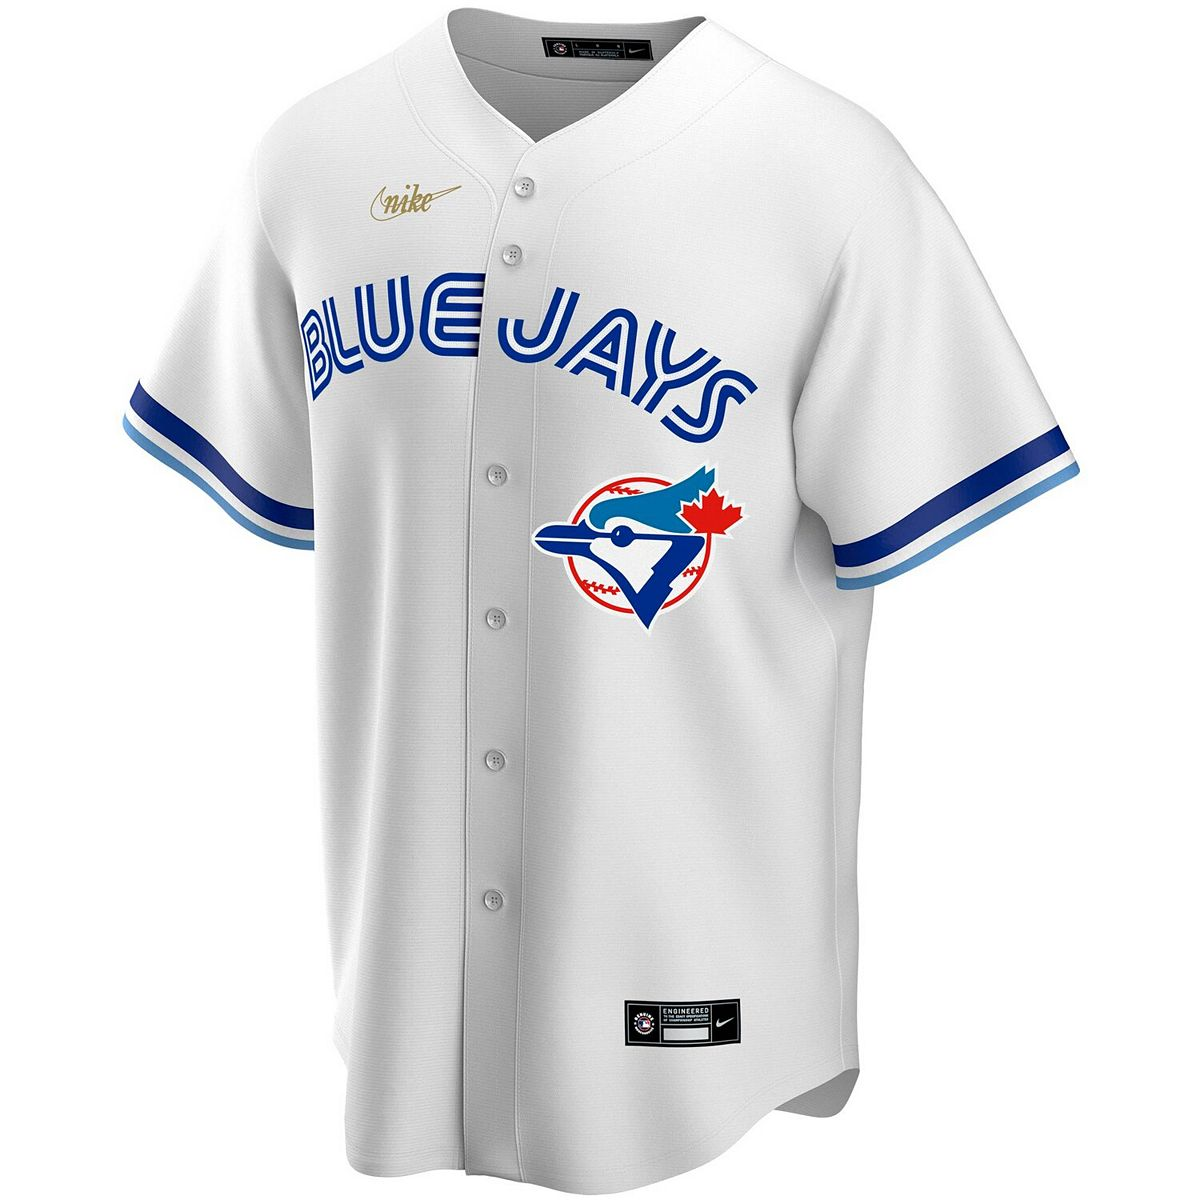 Men's Nike White Toronto Blue Jays Home Cooperstown Collection Team Jersey 9JoGA